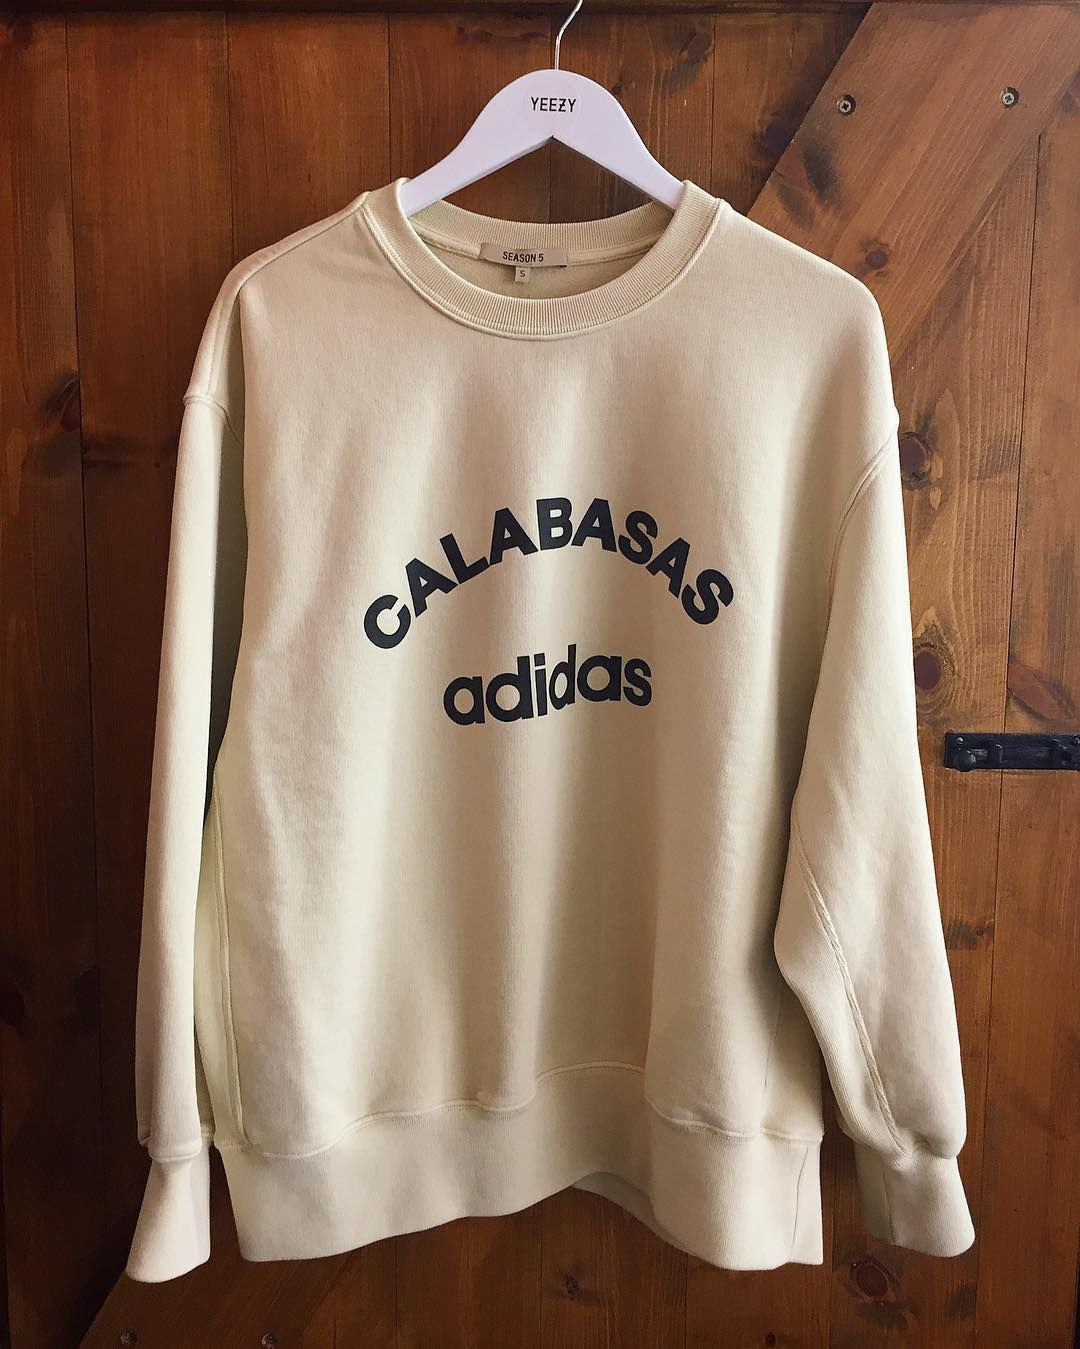 403b22e45 In store now - the Yeezy Season 5 'adidas Calabasas' sweat. We have XS - M  and it's priced 250. #Yeezy #season5 #calabasas #adidas #sweat #sweatshirt  ...